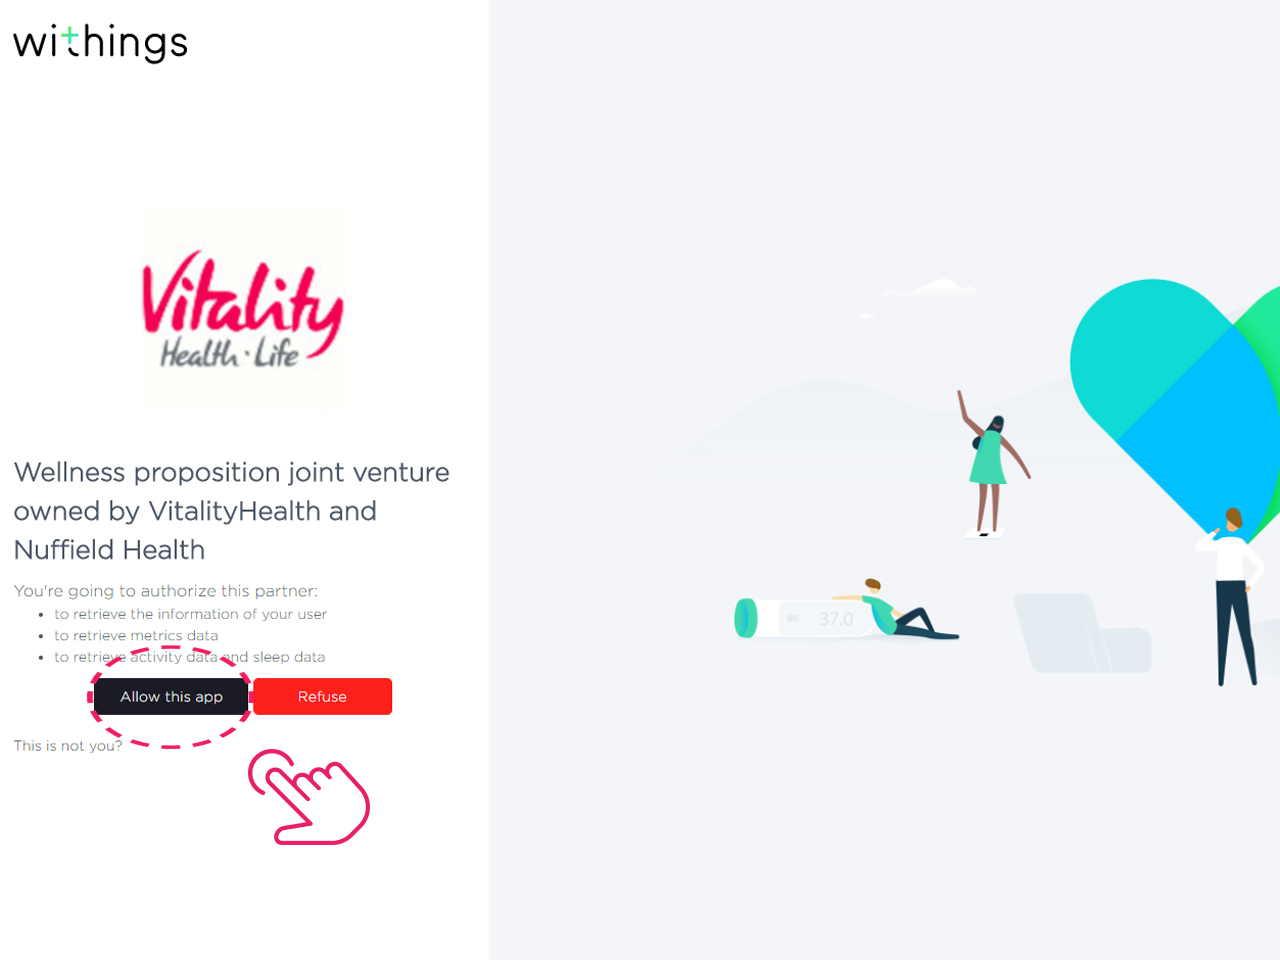 Allow Vitality to retrieve data from Withings